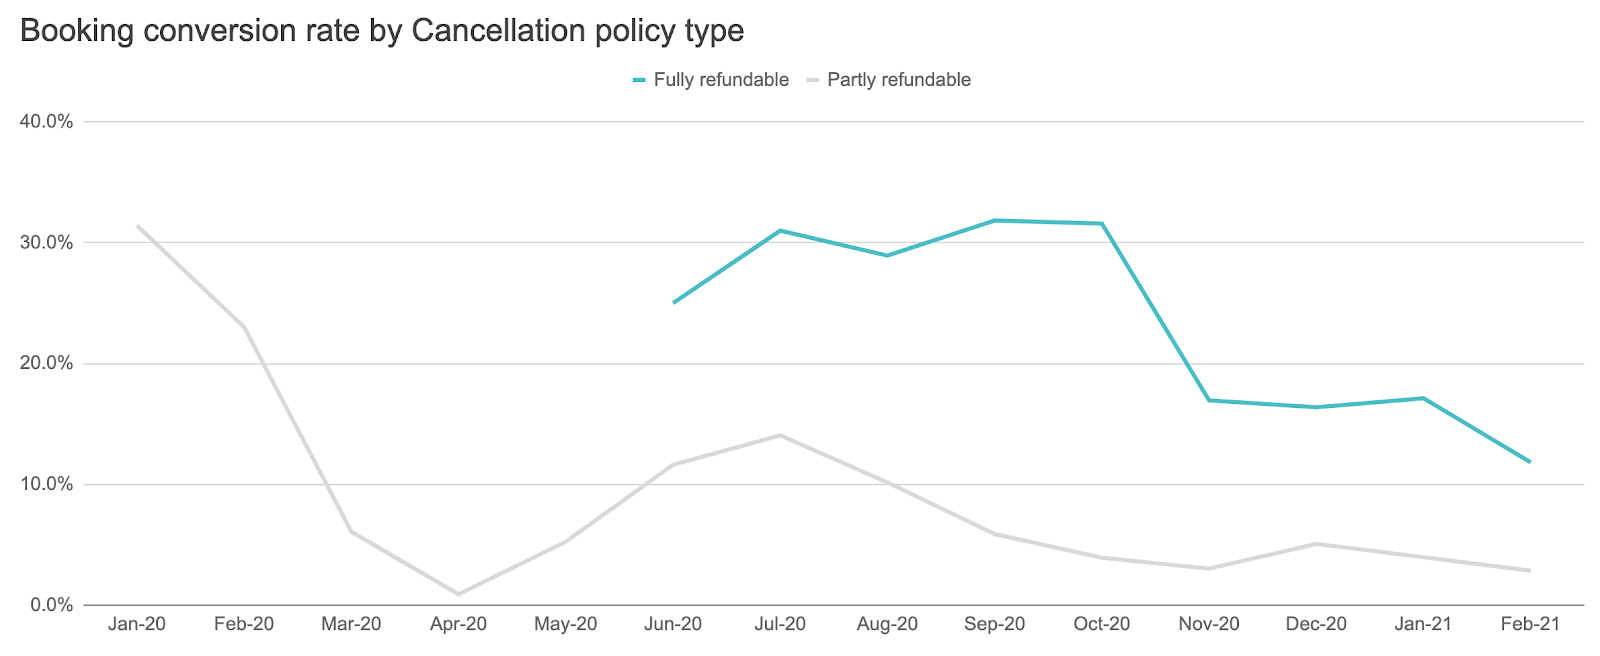 Booking conversion rate for vacation rentals by Cancellation policy type